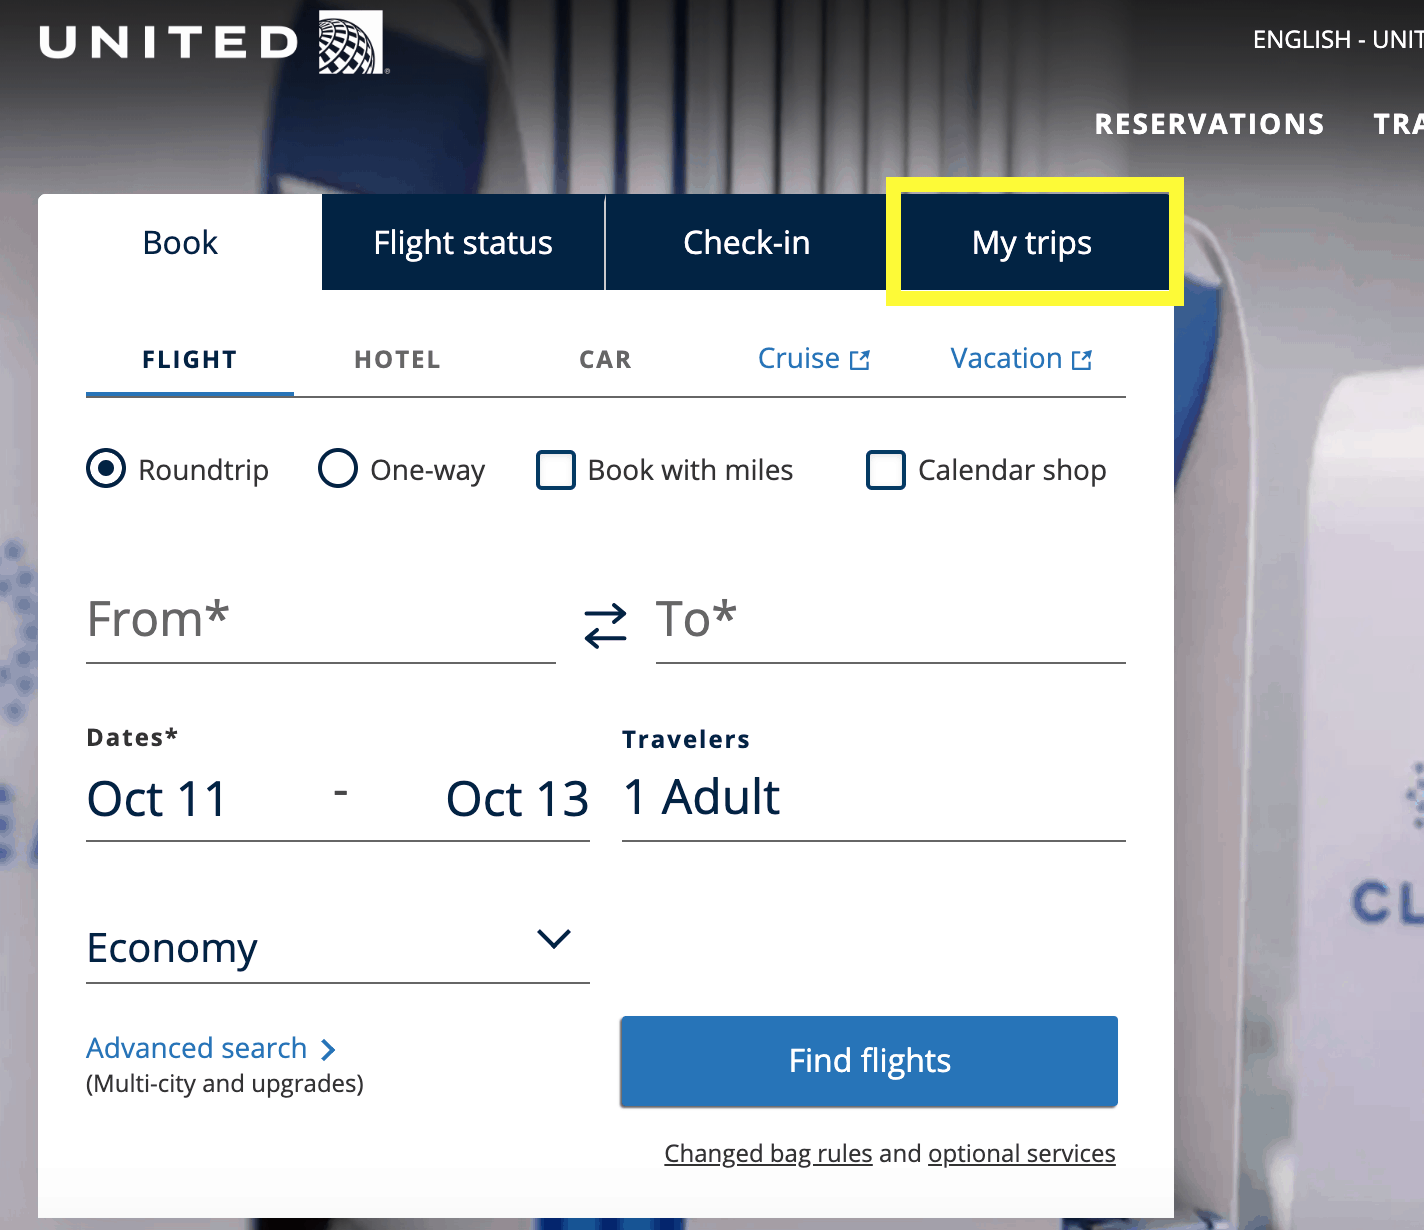 United Airlines Return Policy